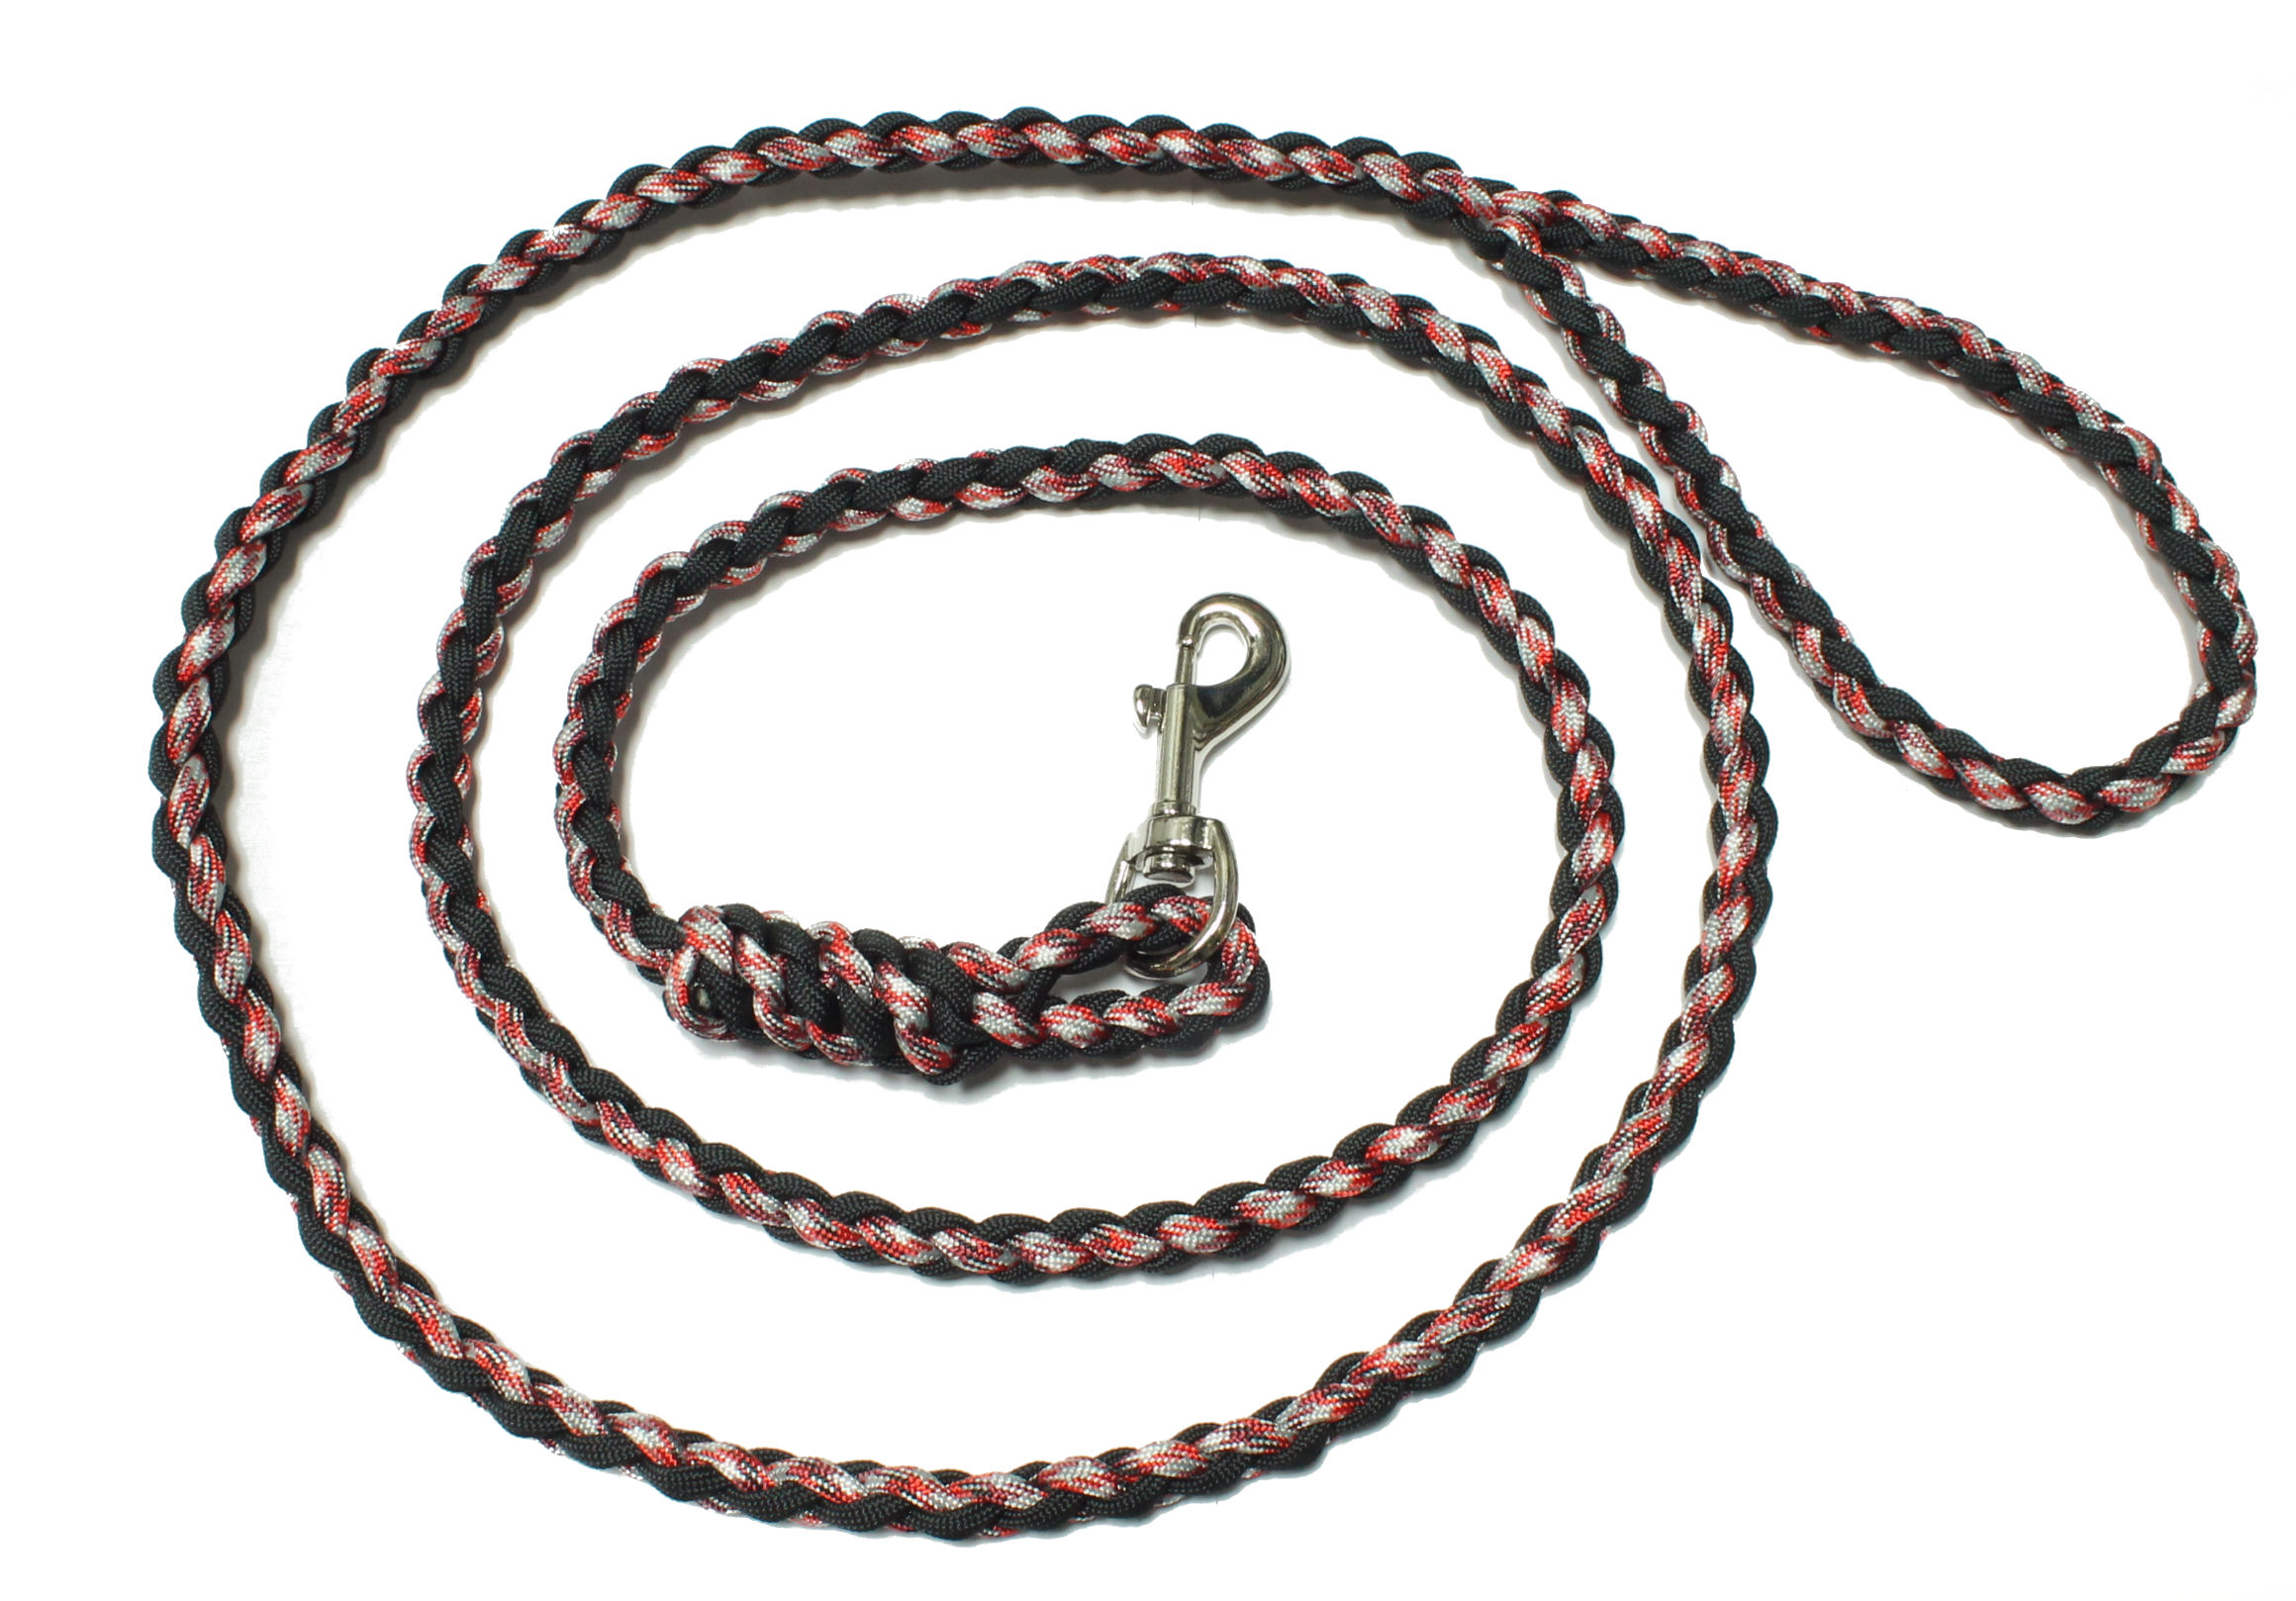 20 creative diy paracord dog leash patterns ideas for Paracord leash instructions